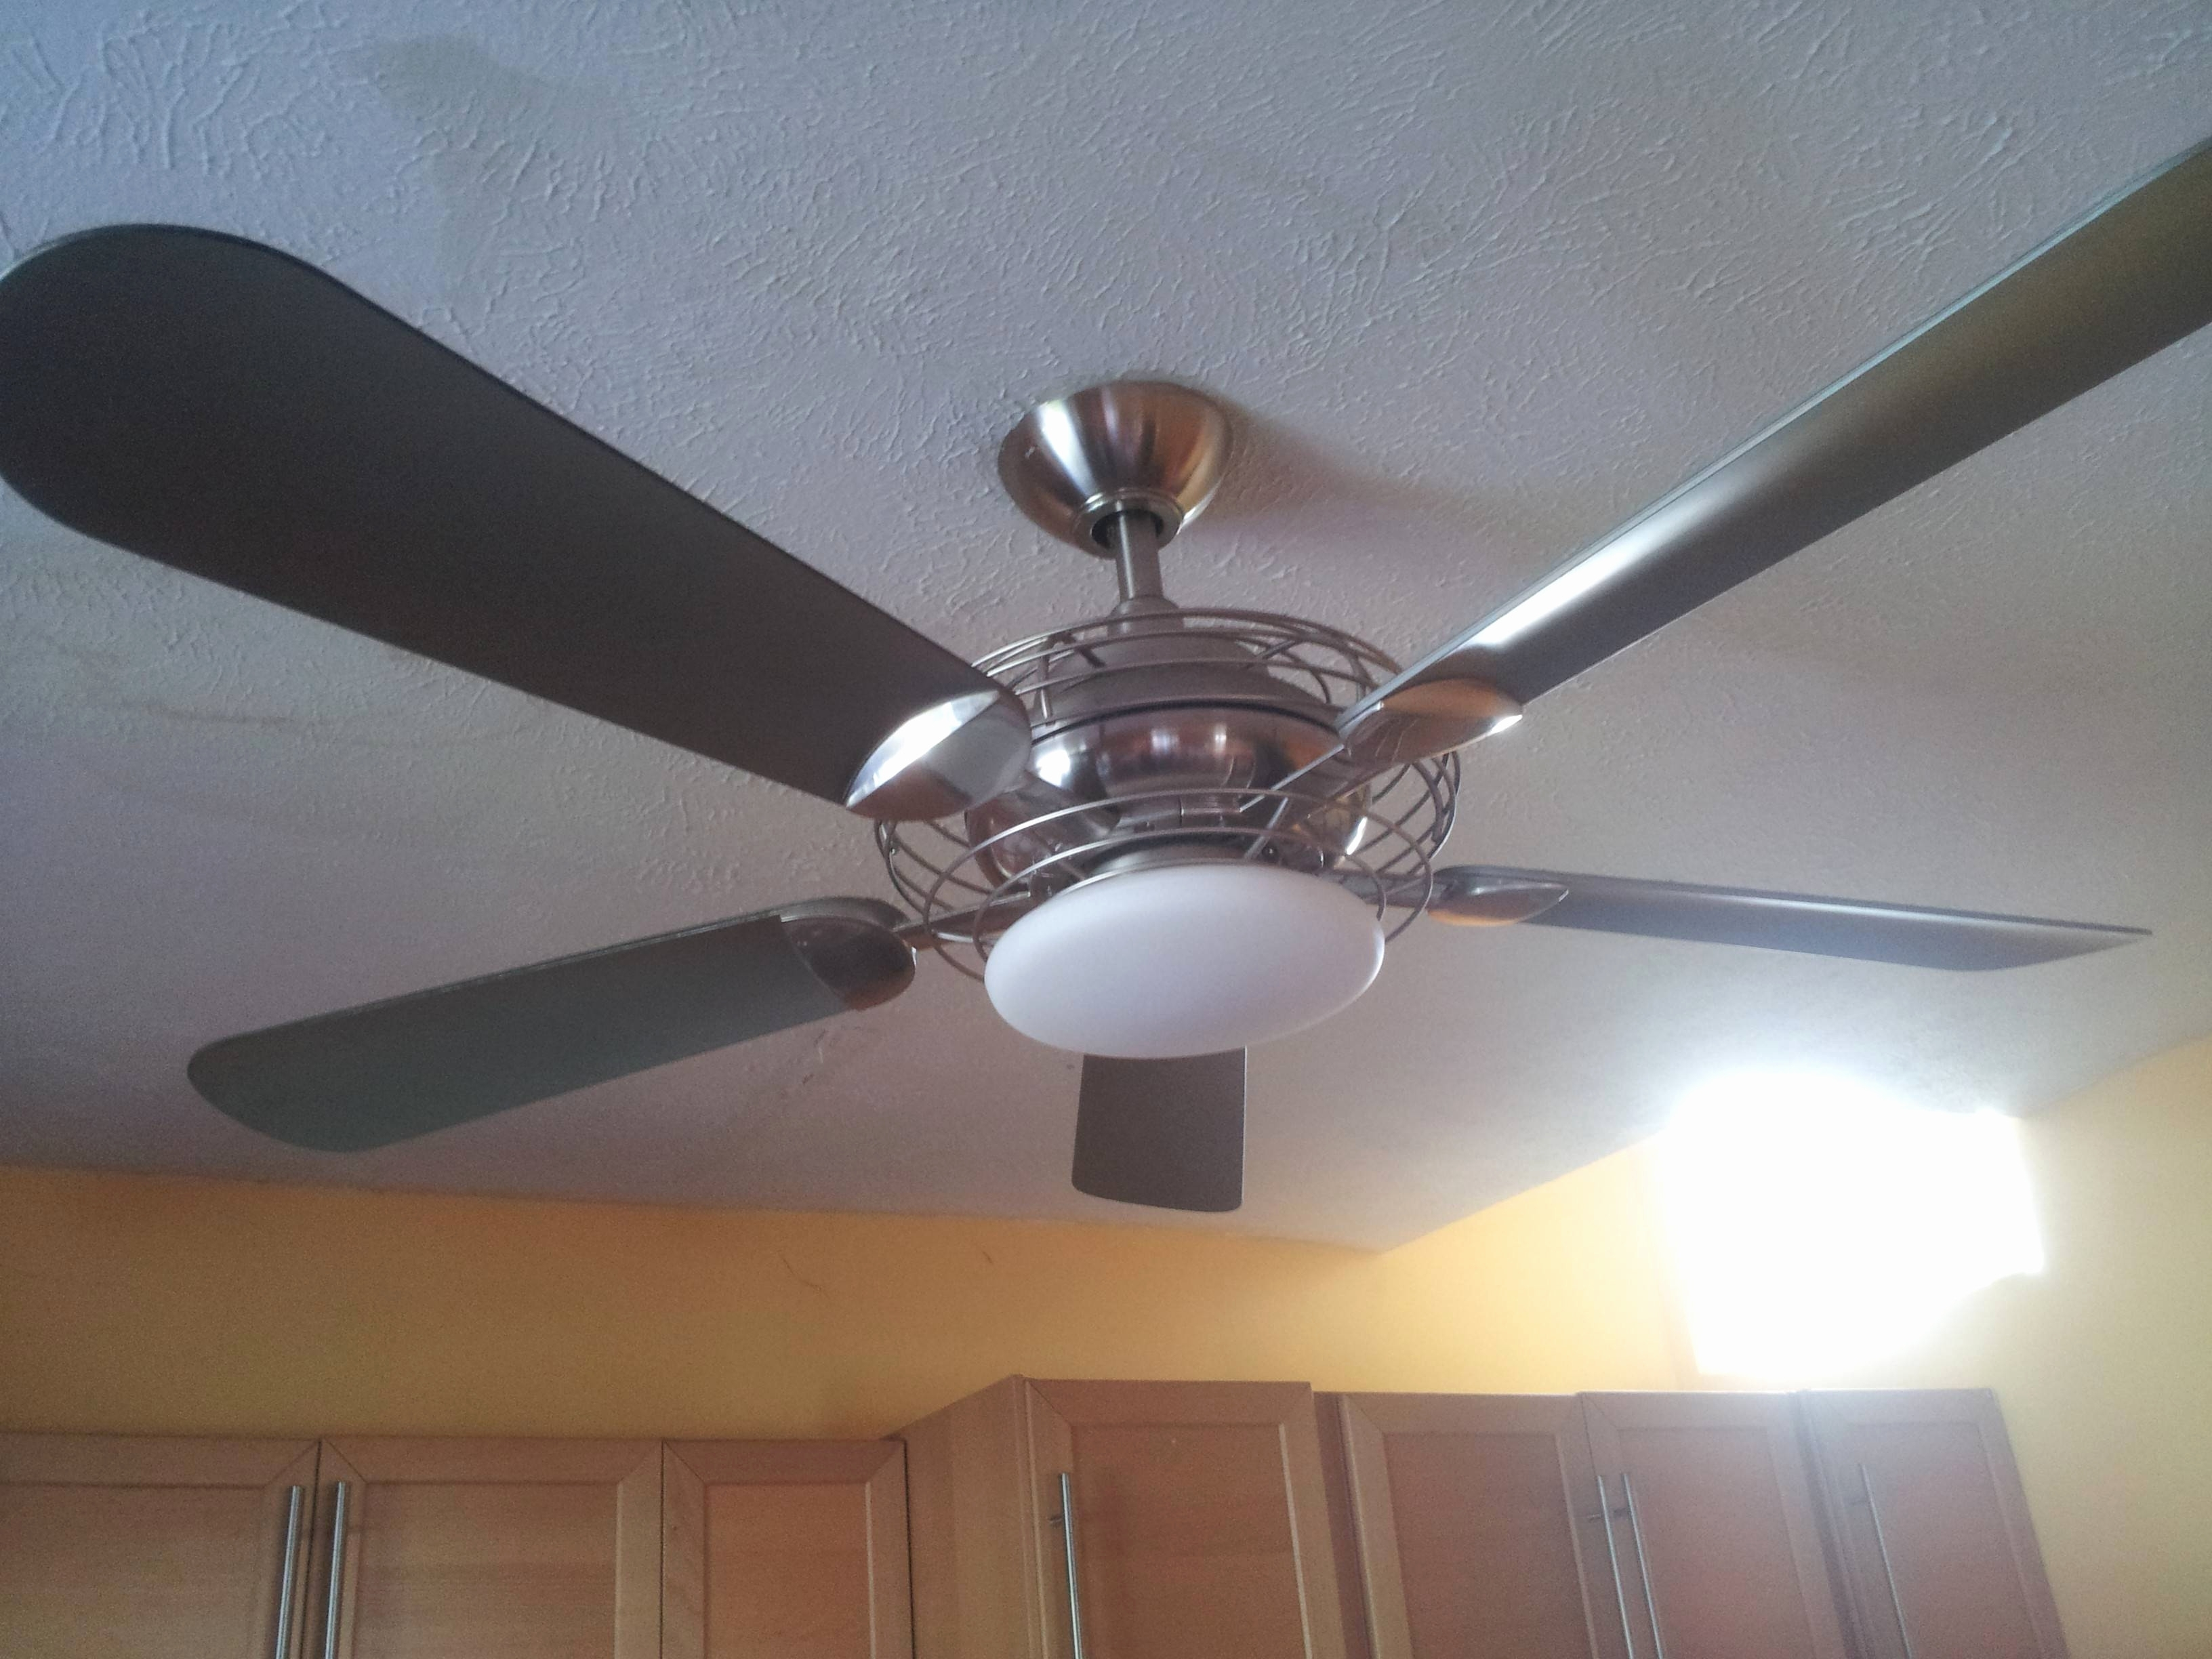 2018 36 Inch Outdoor Ceiling Fans With Light Flush Mount Throughout 36 Inch Flush Mount Ceiling Fans Lovely Archive Of May 2018 Blue (View 20 of 20)